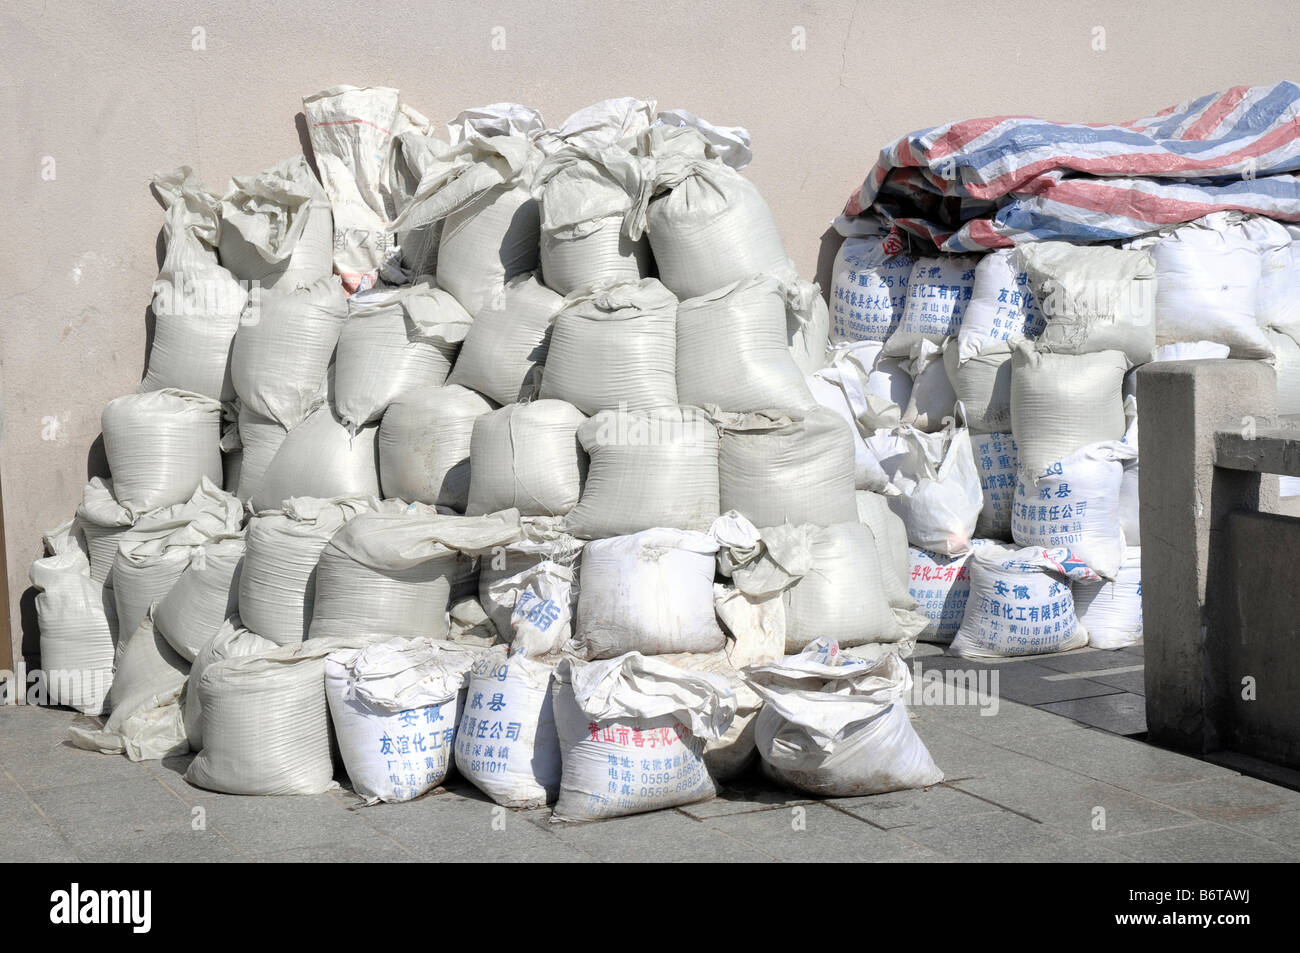 White sacks of supplies waiting to be taken up the mountain by porters. Huangshan, Yellow Mountain, Anhui, China. - Stock Image